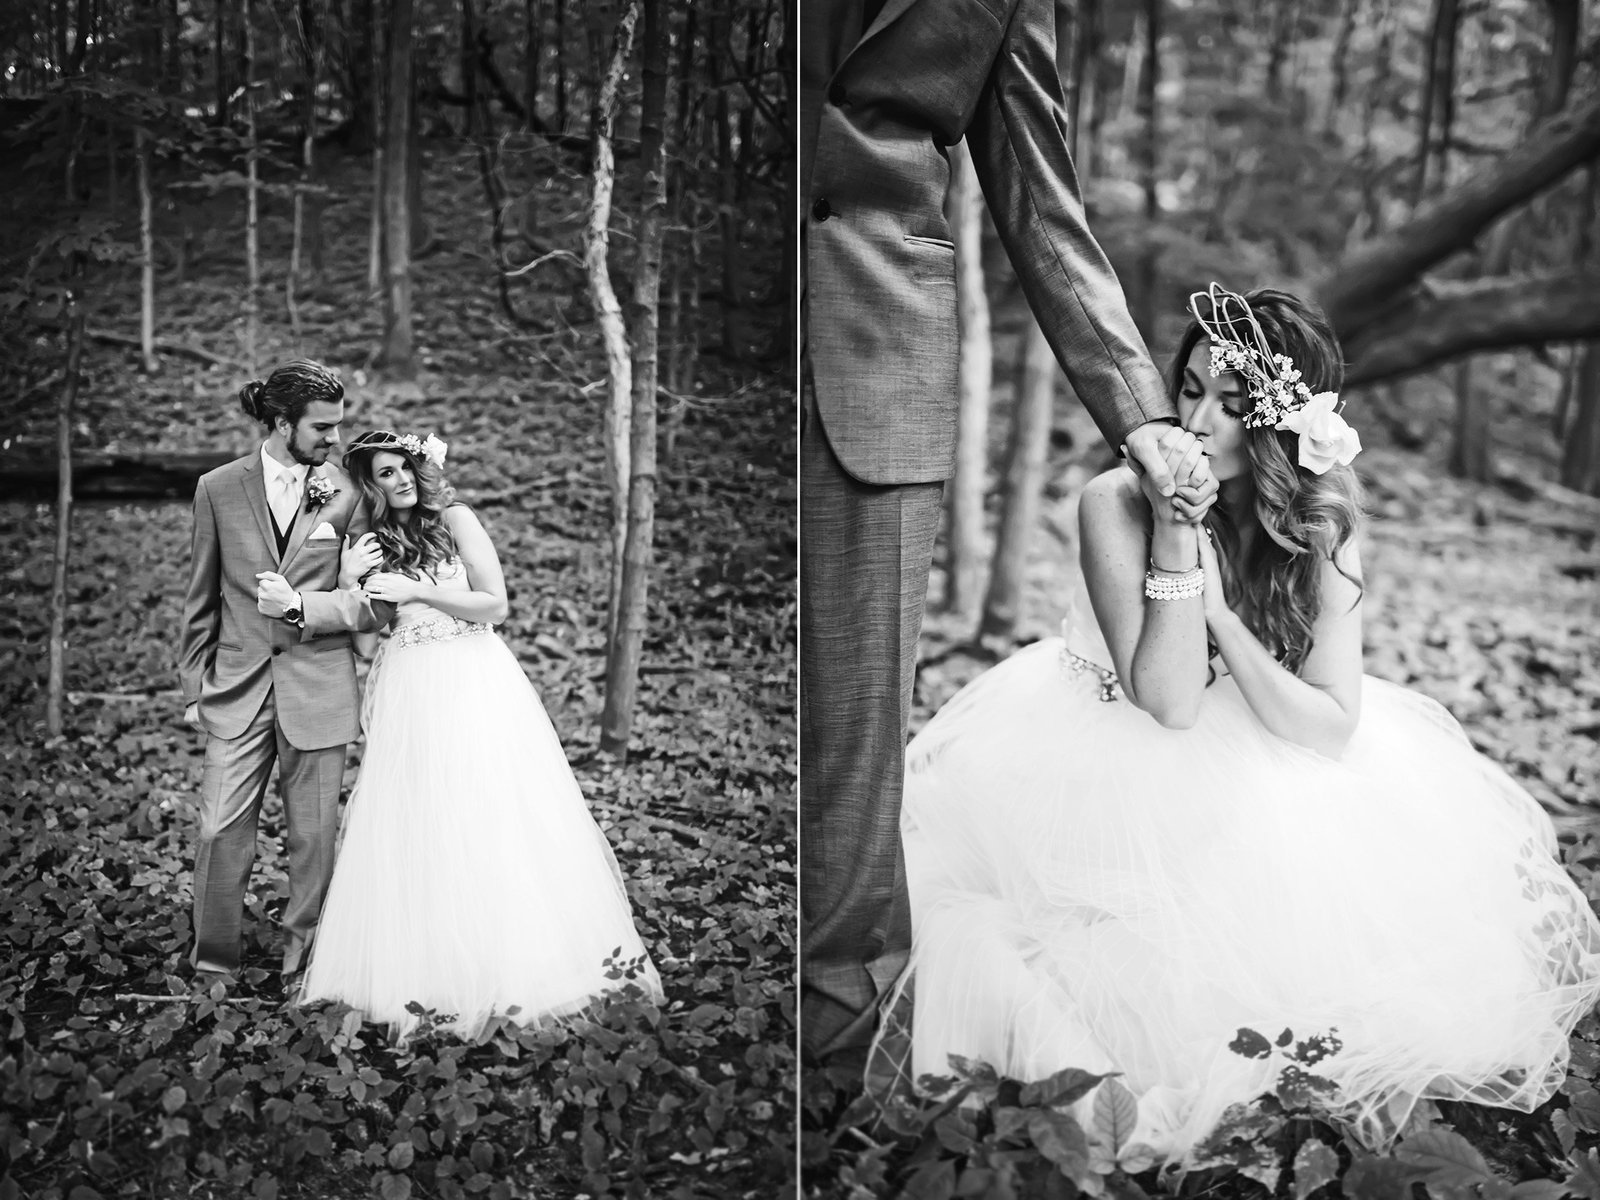 Illinois_wedding_photographer_018